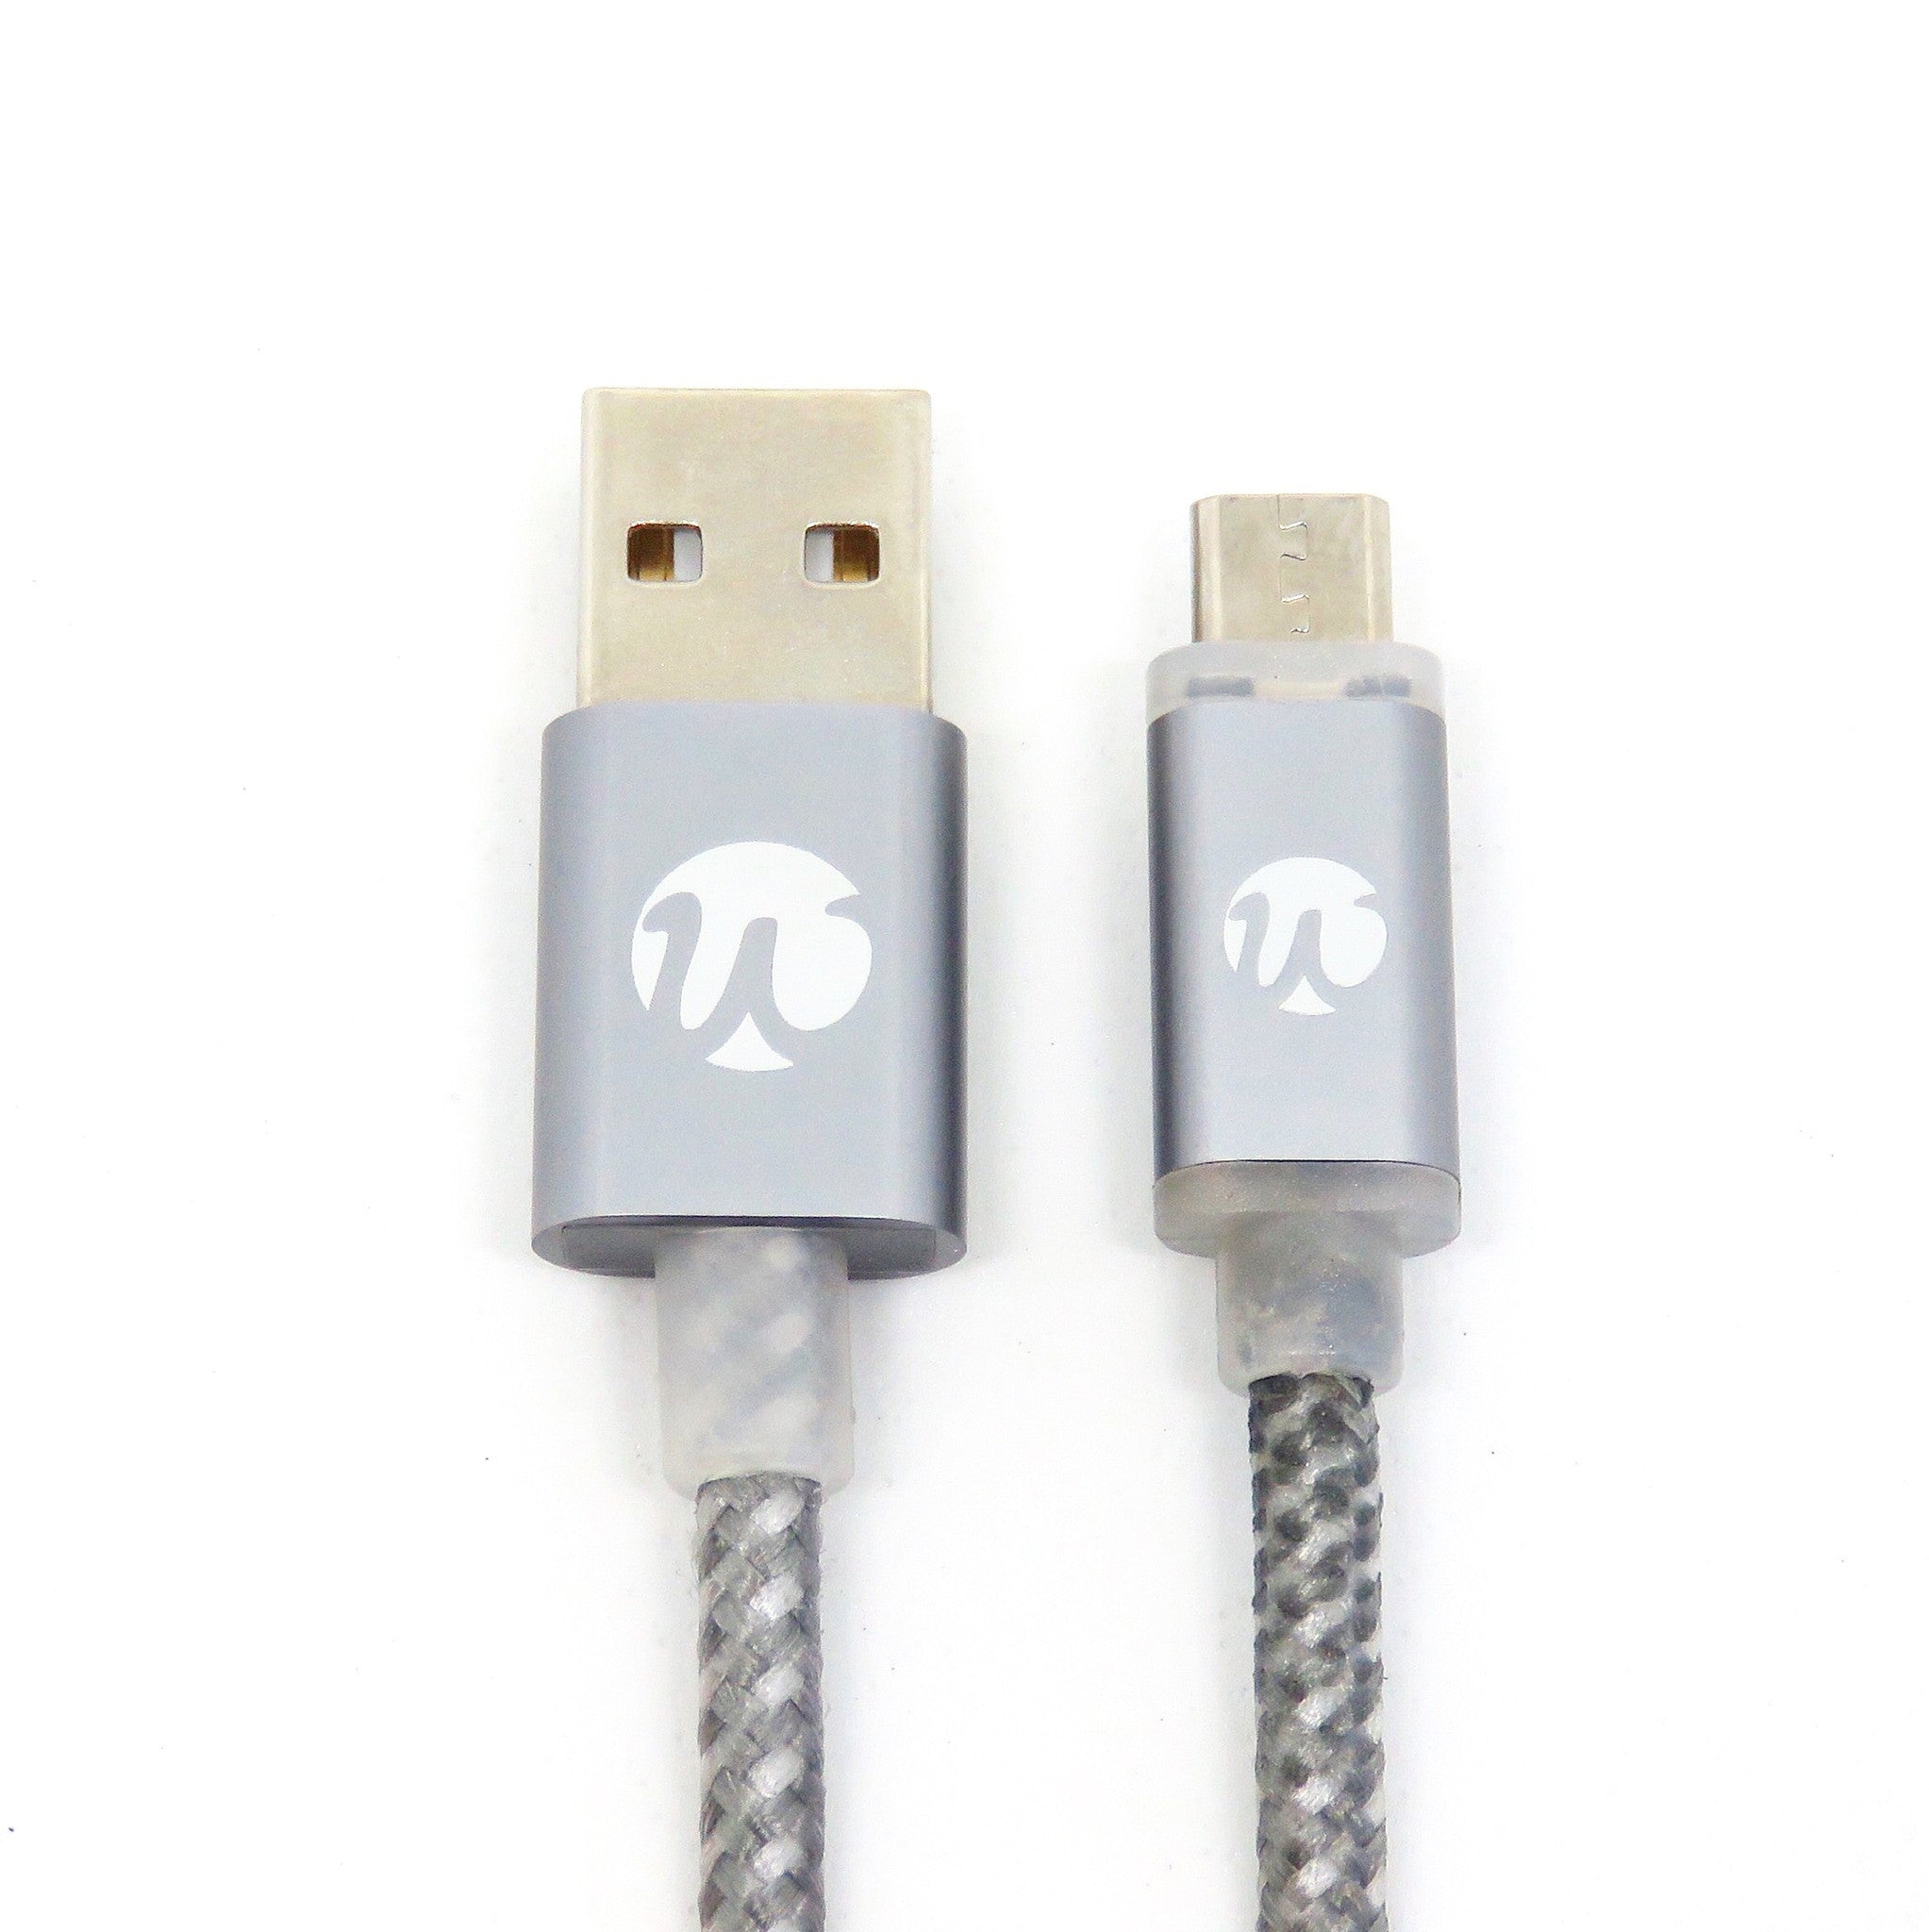 Quickdraw v3 LED Micro USB Cable